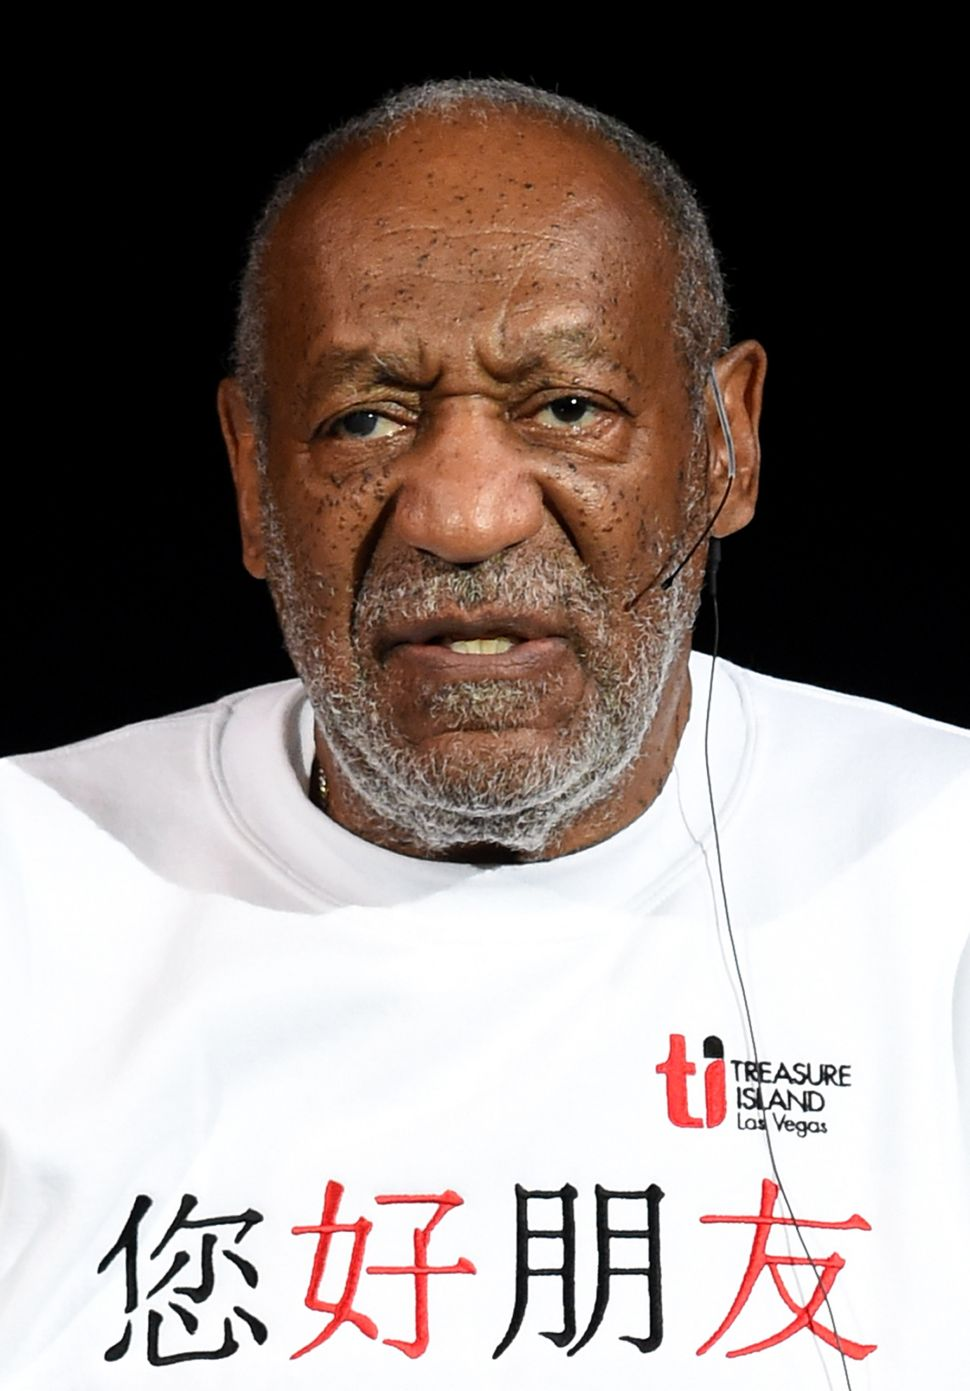 Plaque Removal: NYU Is Not the First School to Have a Cosby Problem